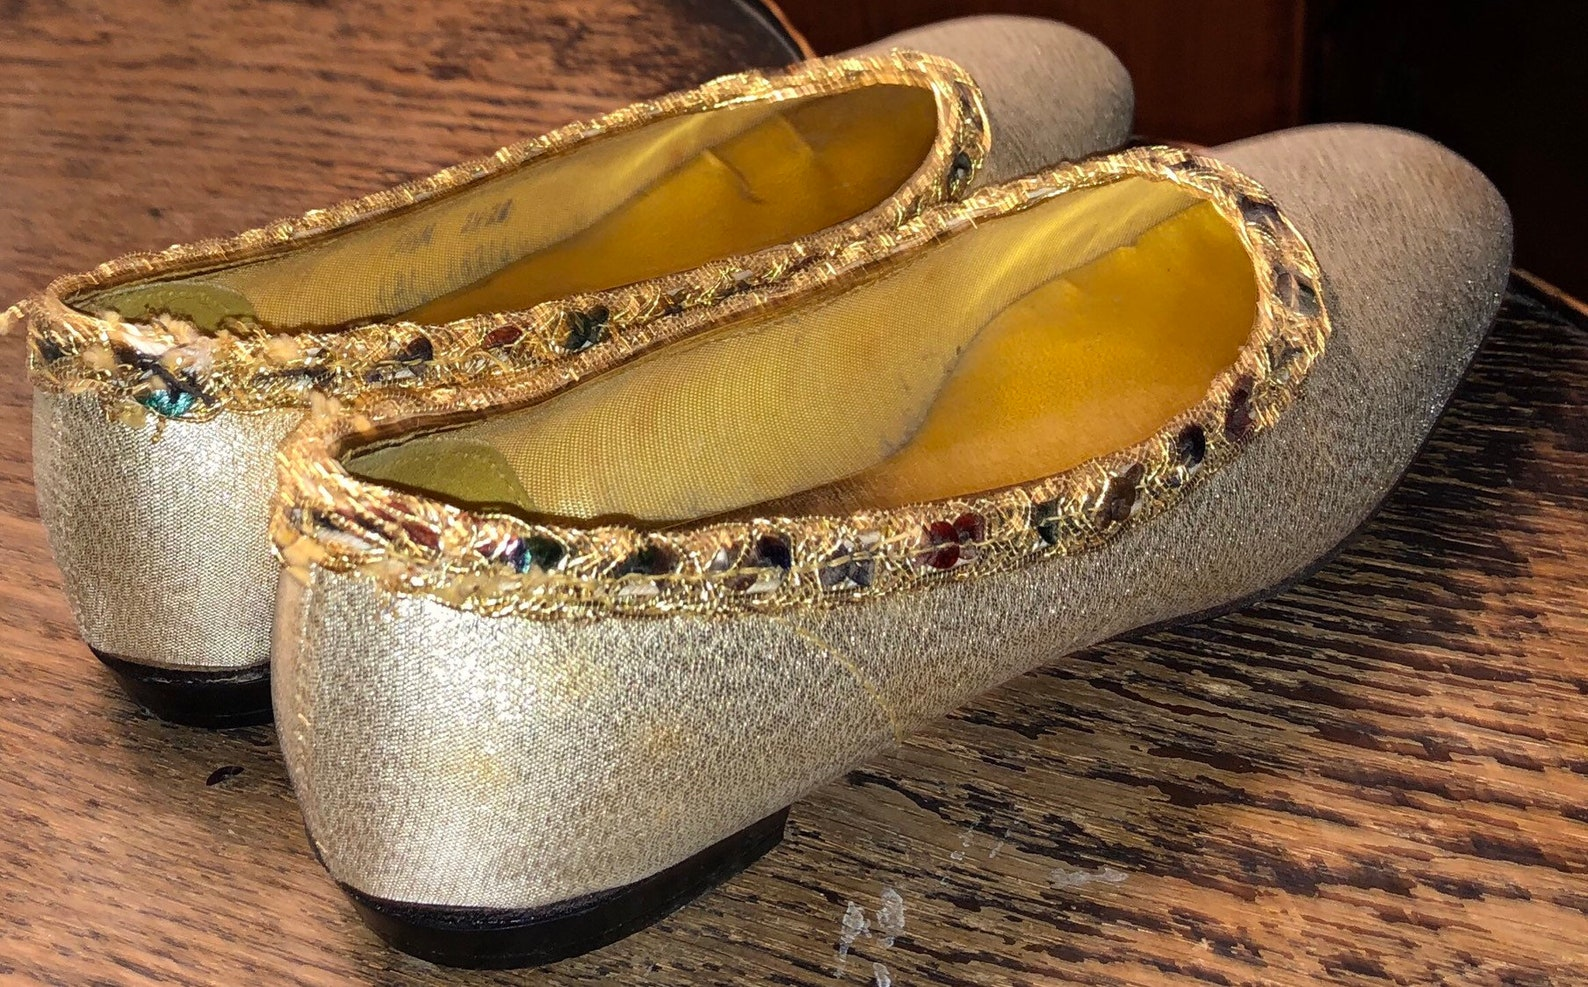 1960s gold lame flats di golanti originals size 5 1/2 slippers ballet slipper style lightly worn ladies shoes